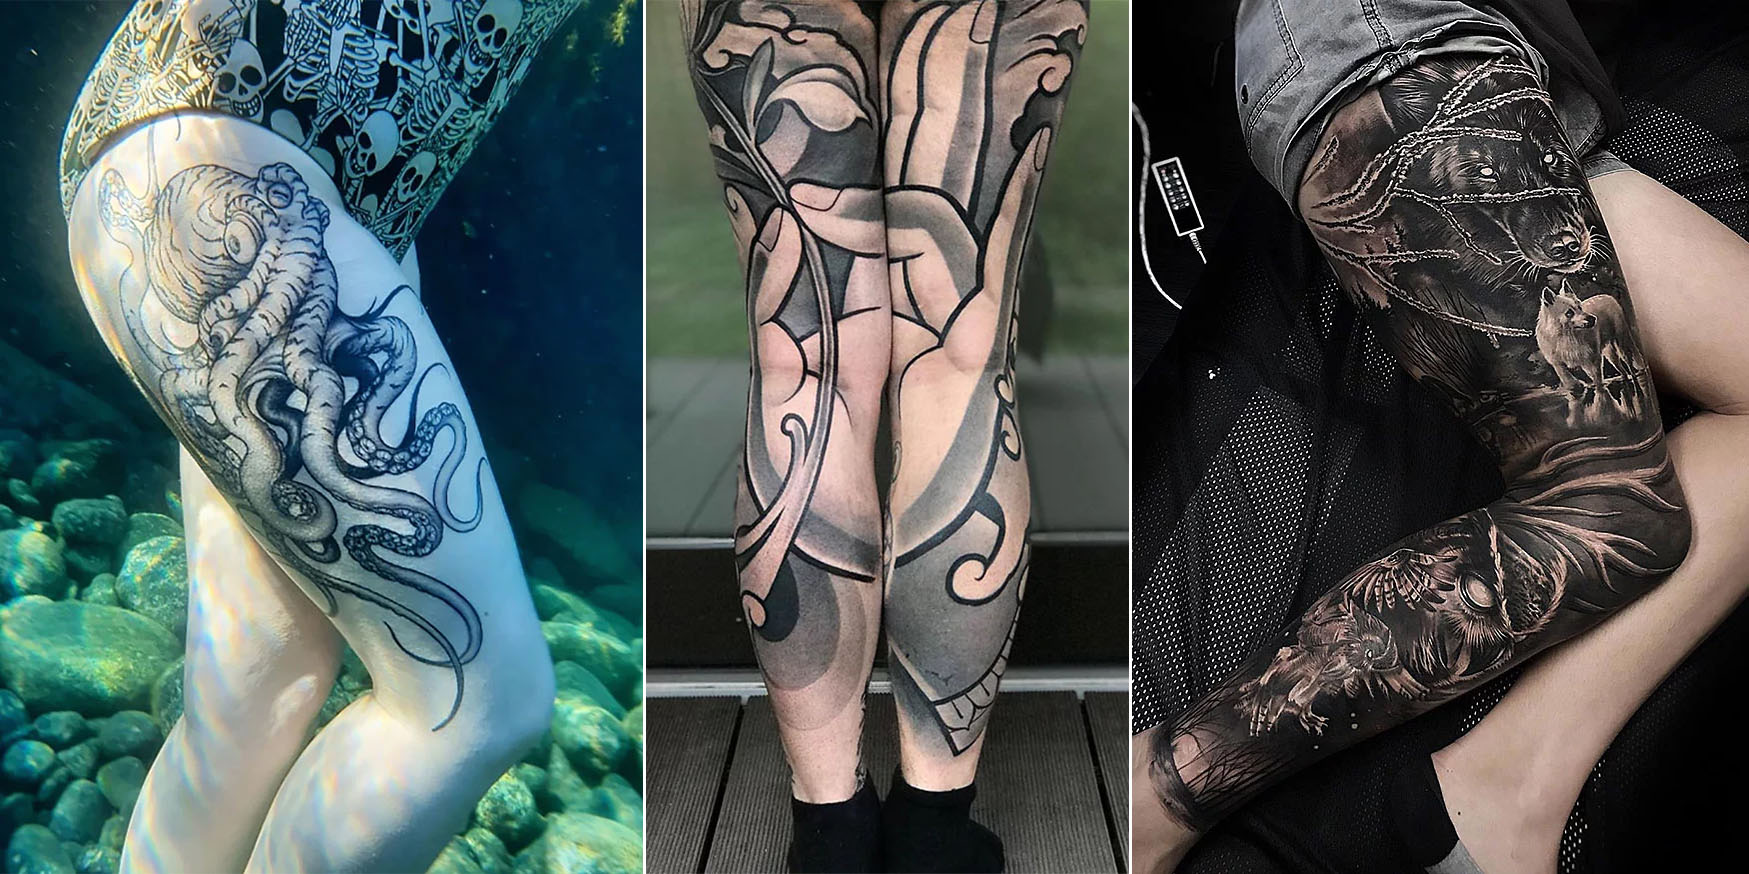 45 People Showing Off Their Awesome Leg Tattoos